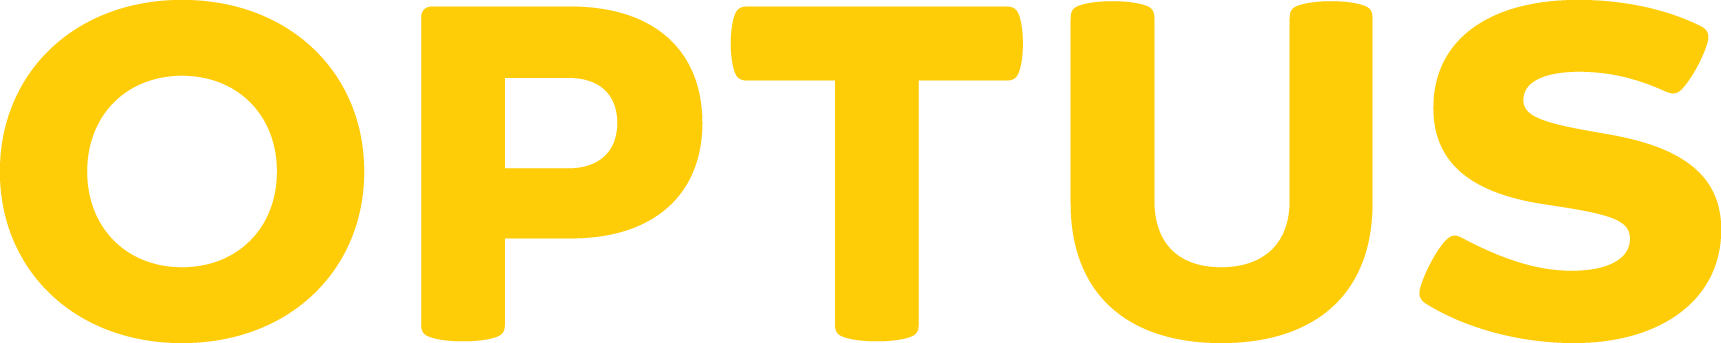 OPTUS_Yellow_sRGB_RELEASE_03_310316.png